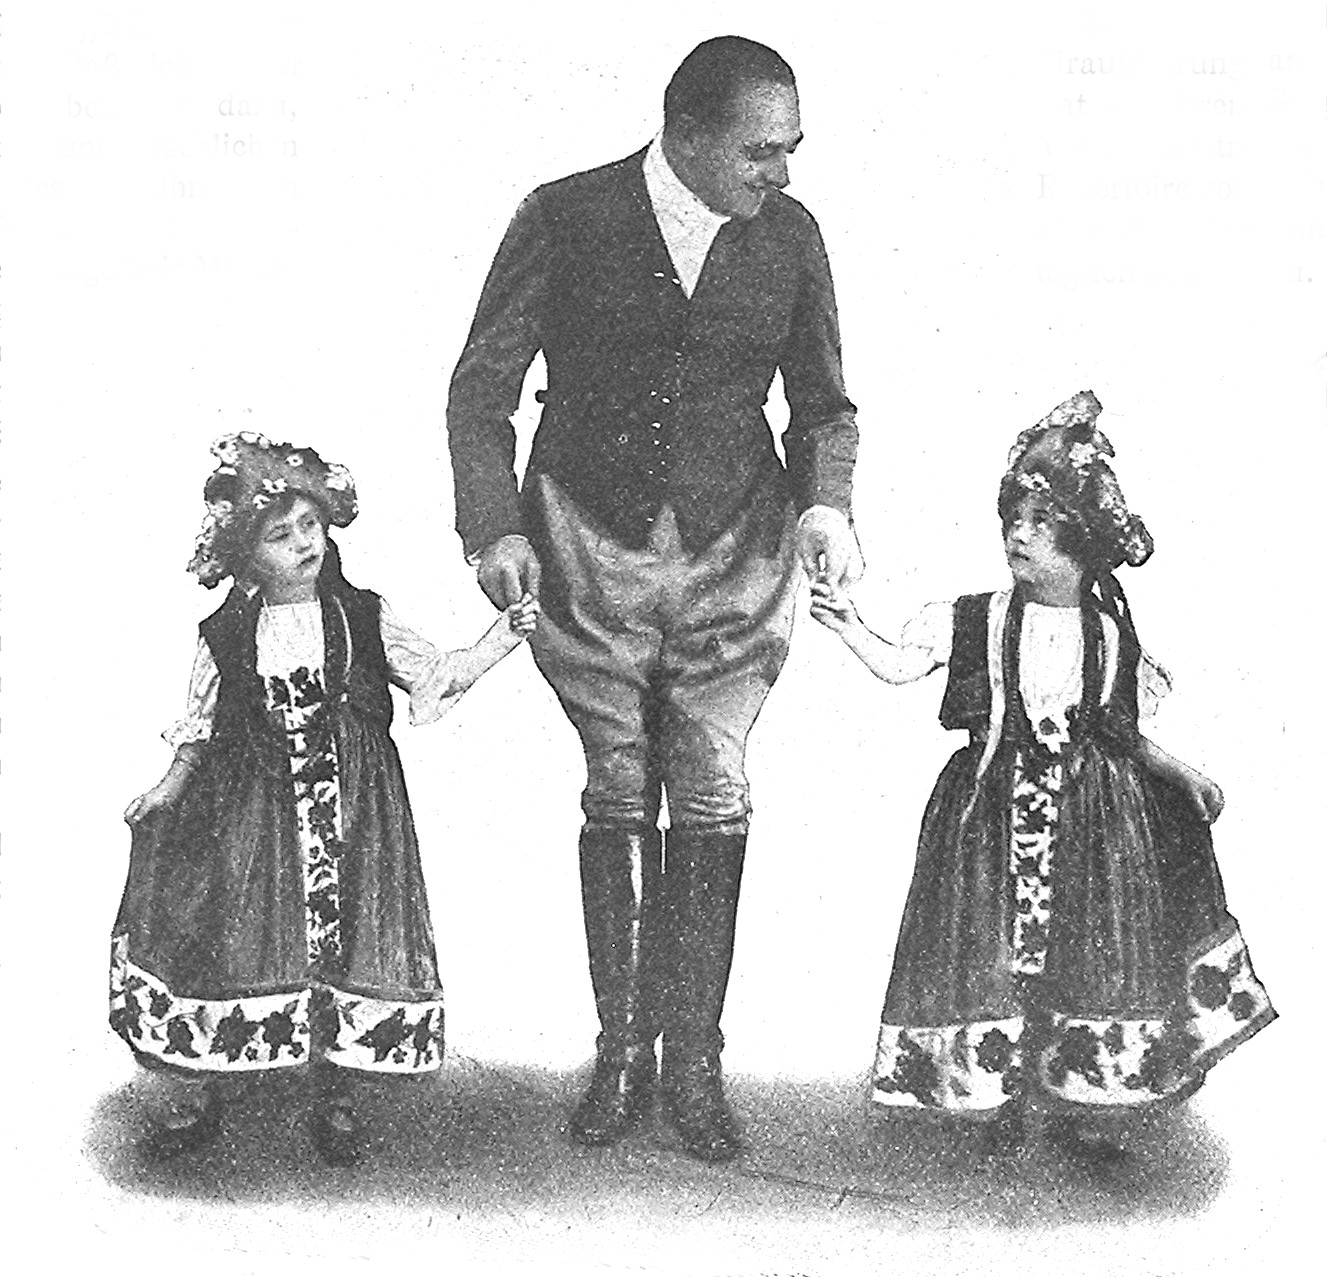 "Hubert Marischa as the impoverished Tassilo in ""Gräfin Mariza"" with two children from the opening scene of the Kálmán operetta. Marischka sang the world-premiere in Vienna, 1924. (Photo: Archive Operetta Research Center)"